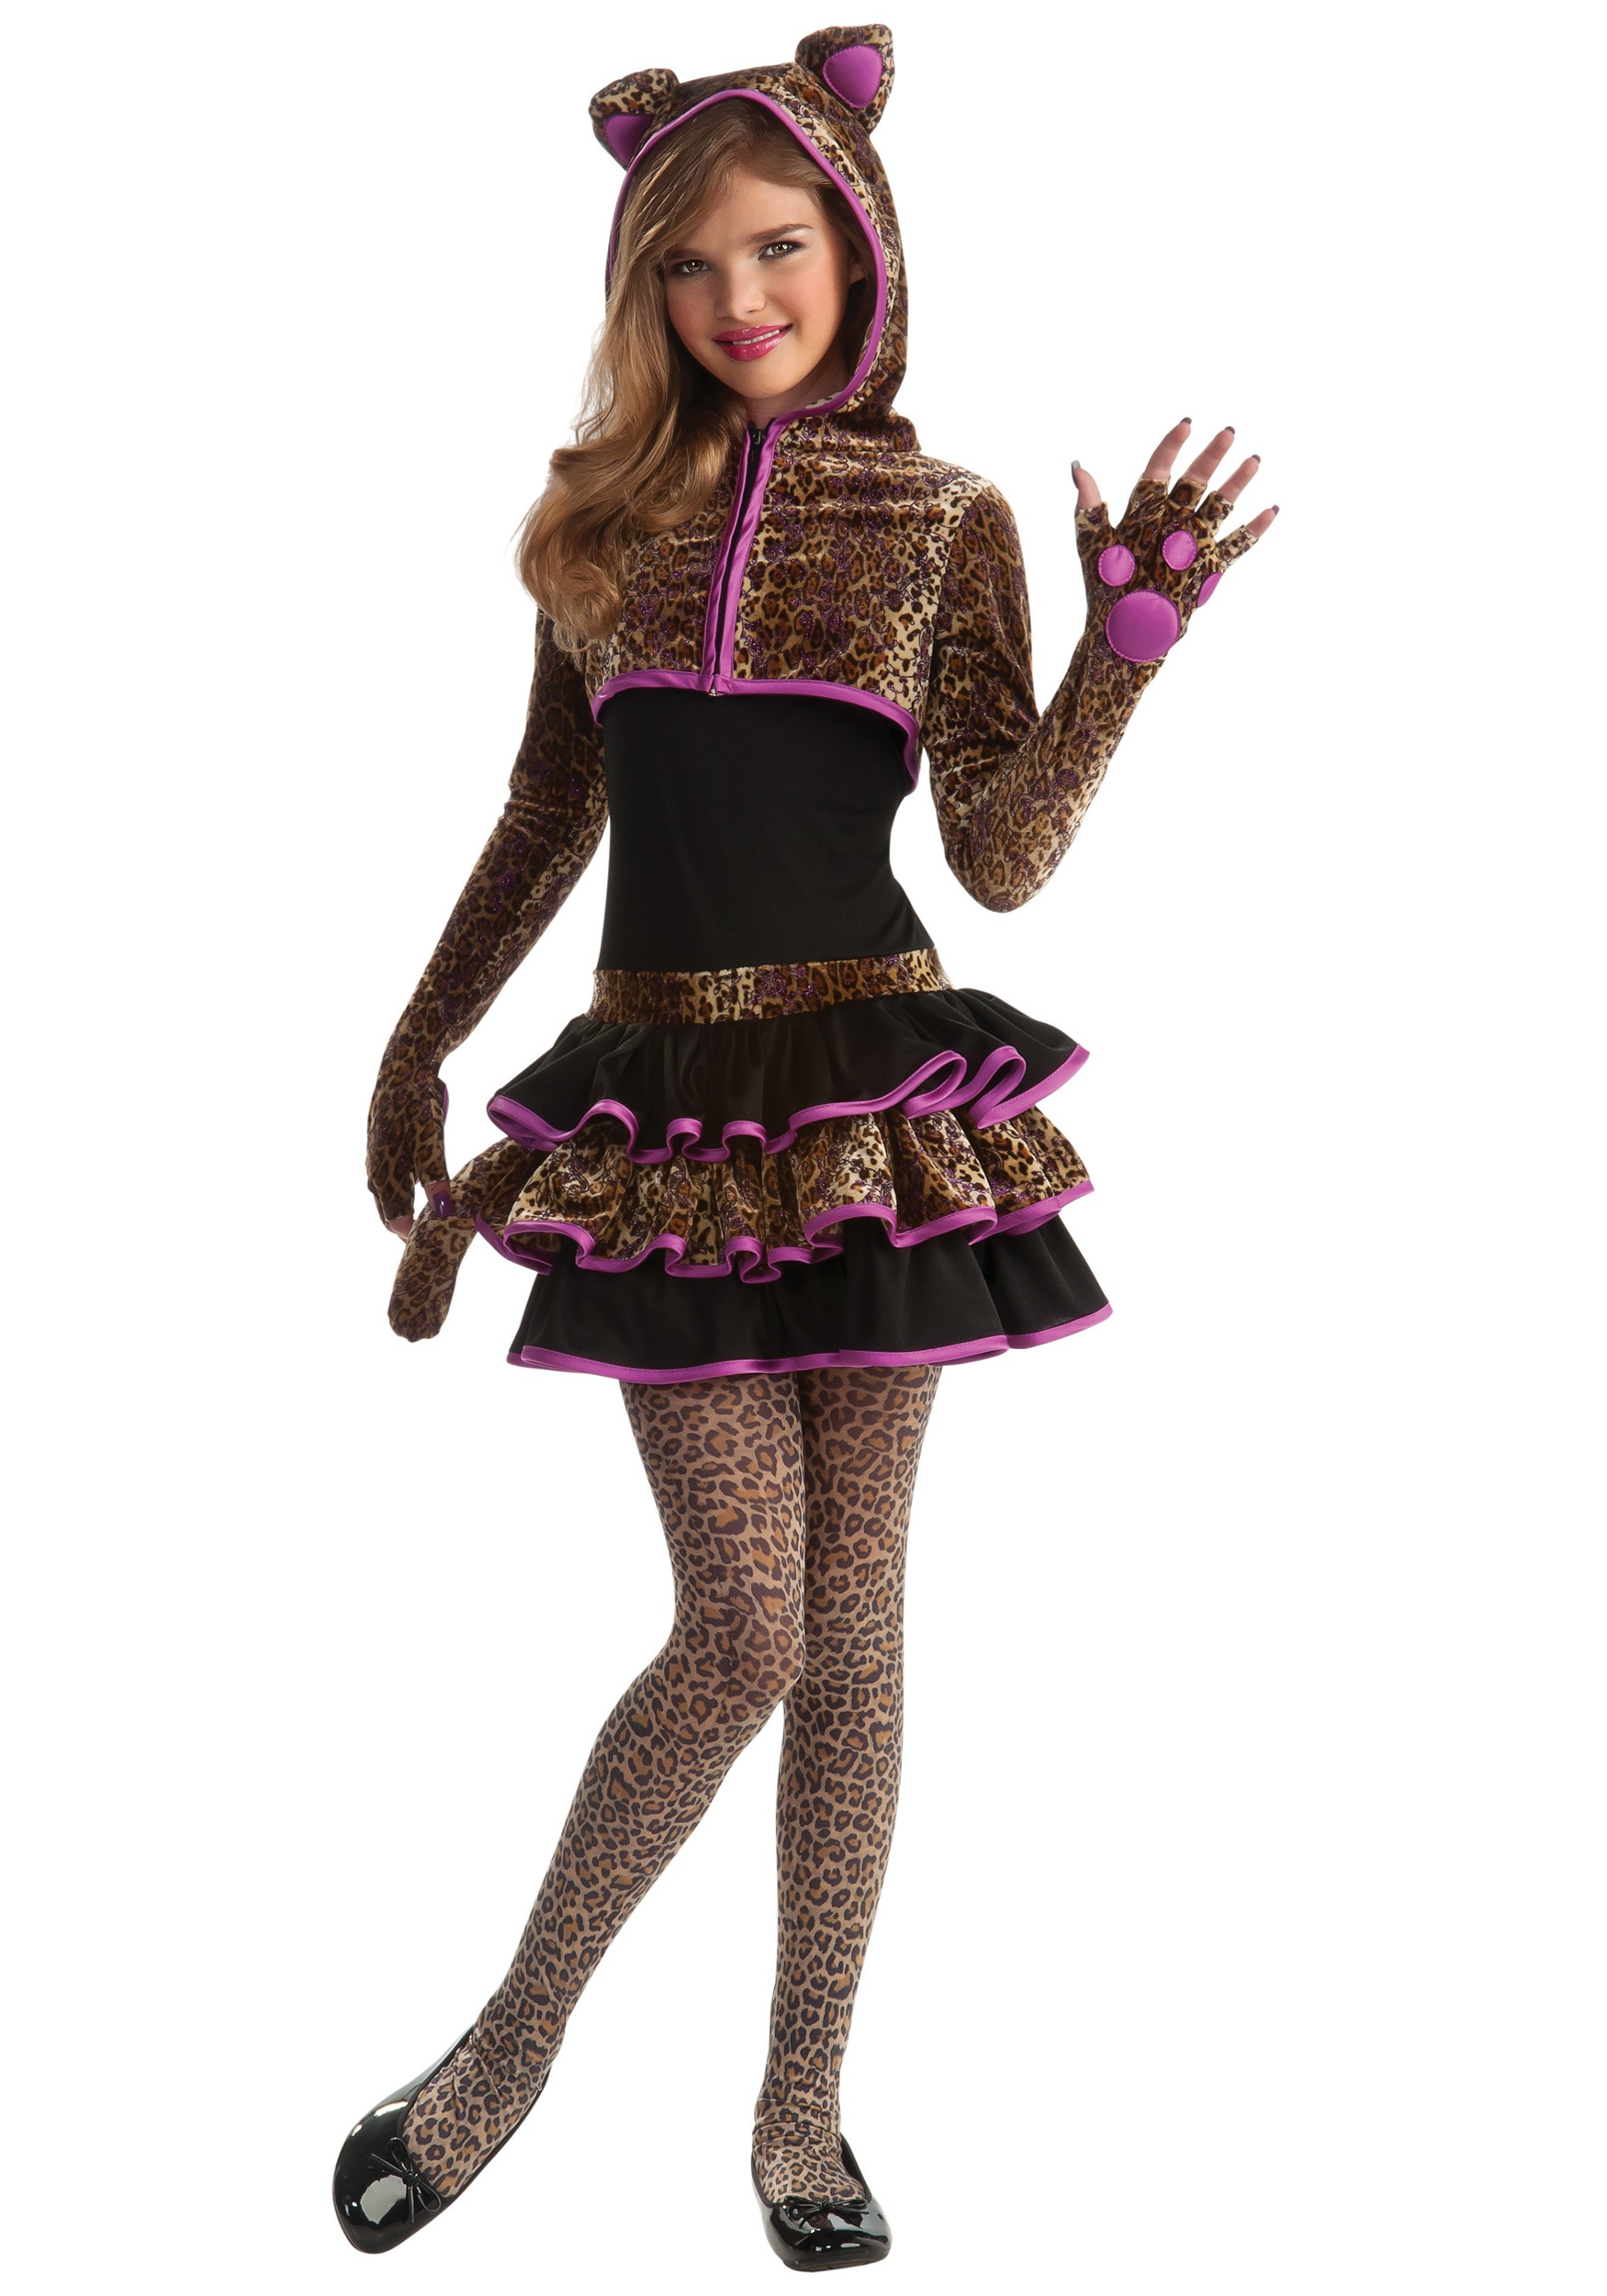 Think, cat holloween costumes for teens something